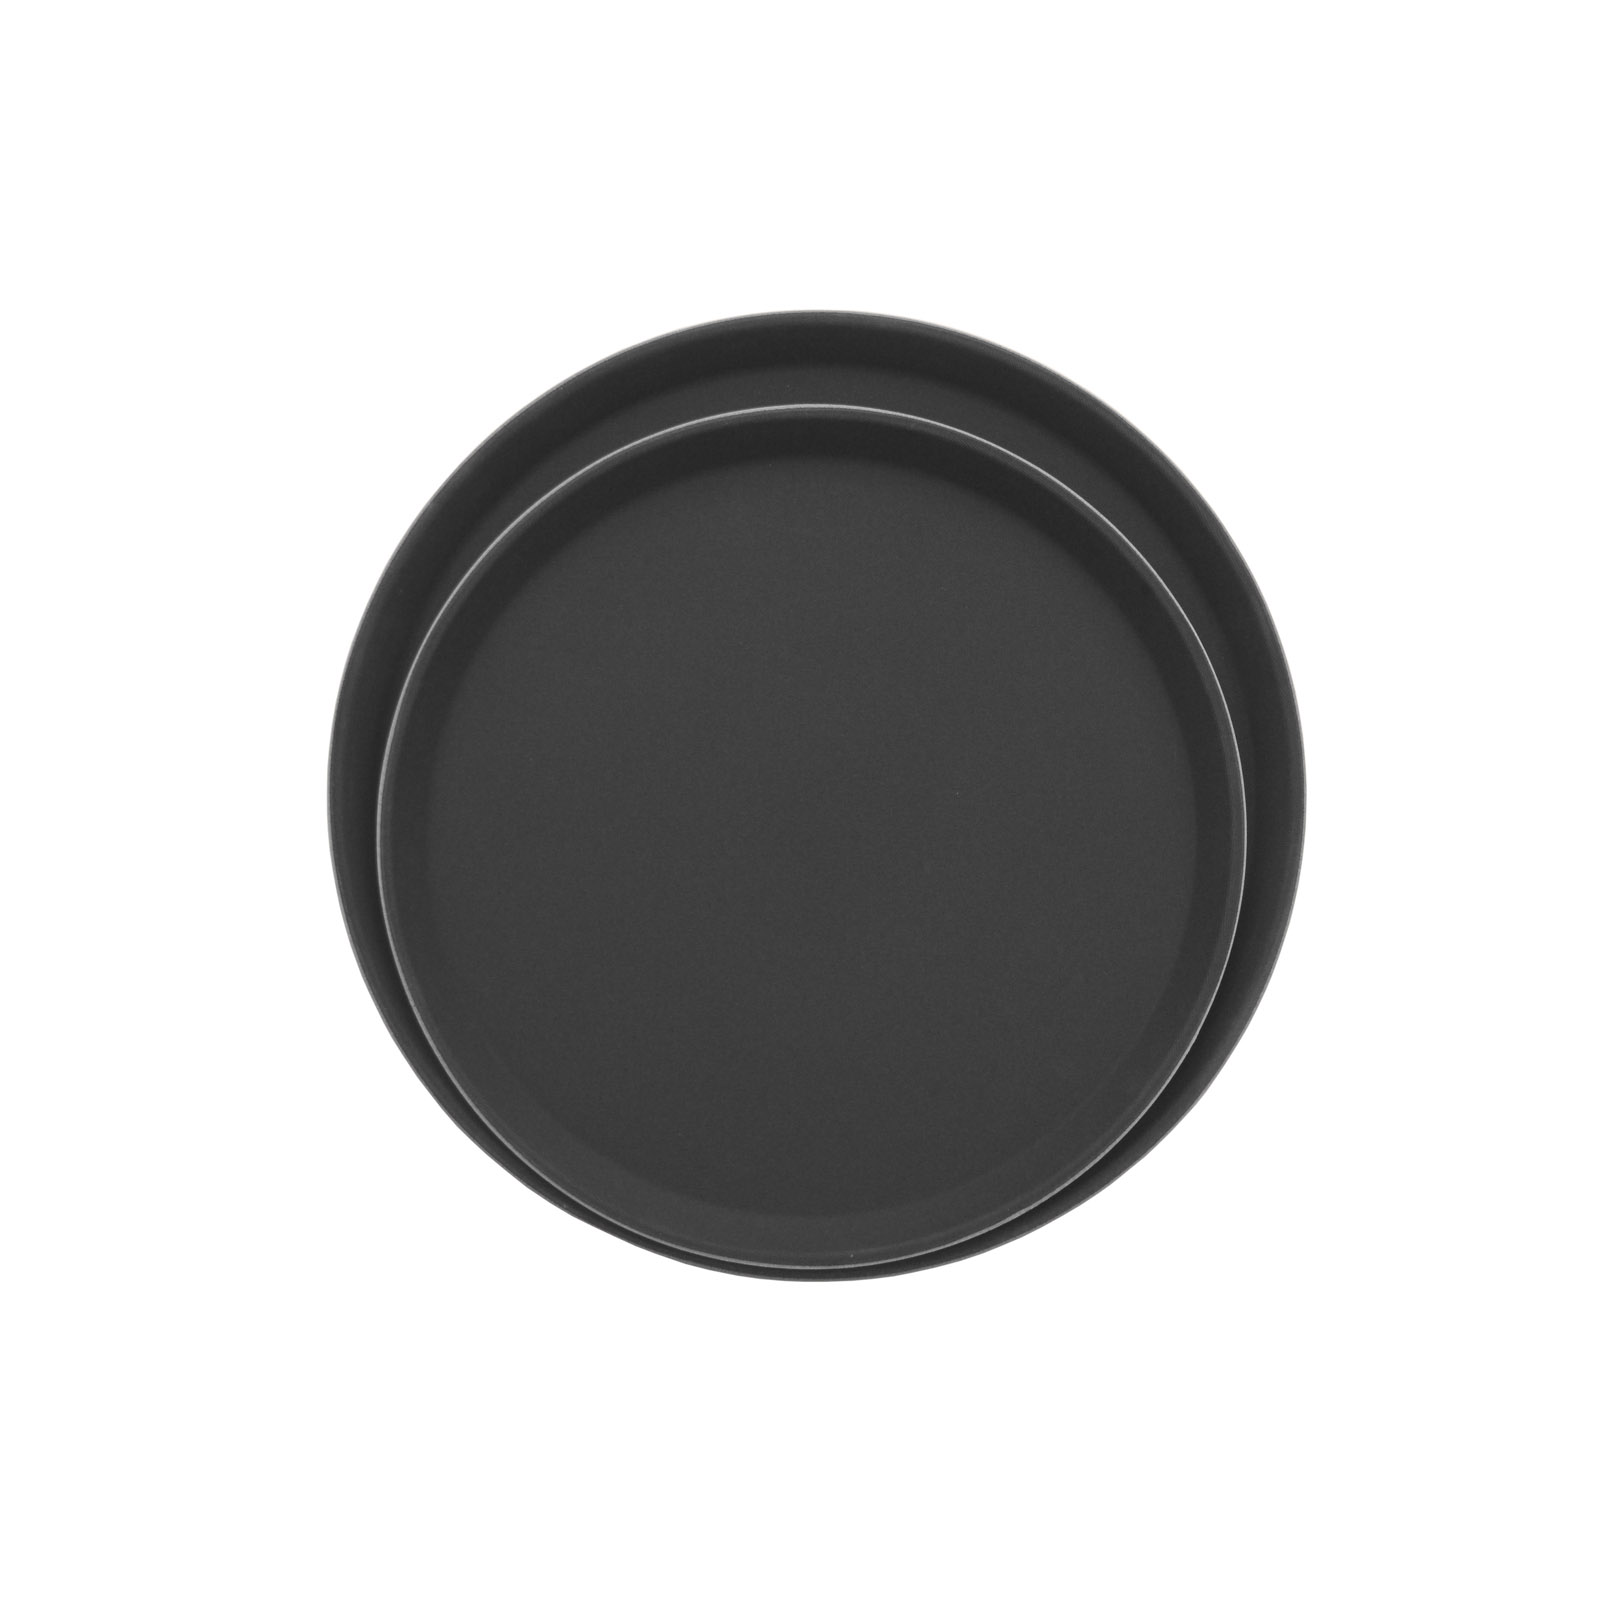 Admiral Craft NST-11BK/ROUND serving tray, non-skid